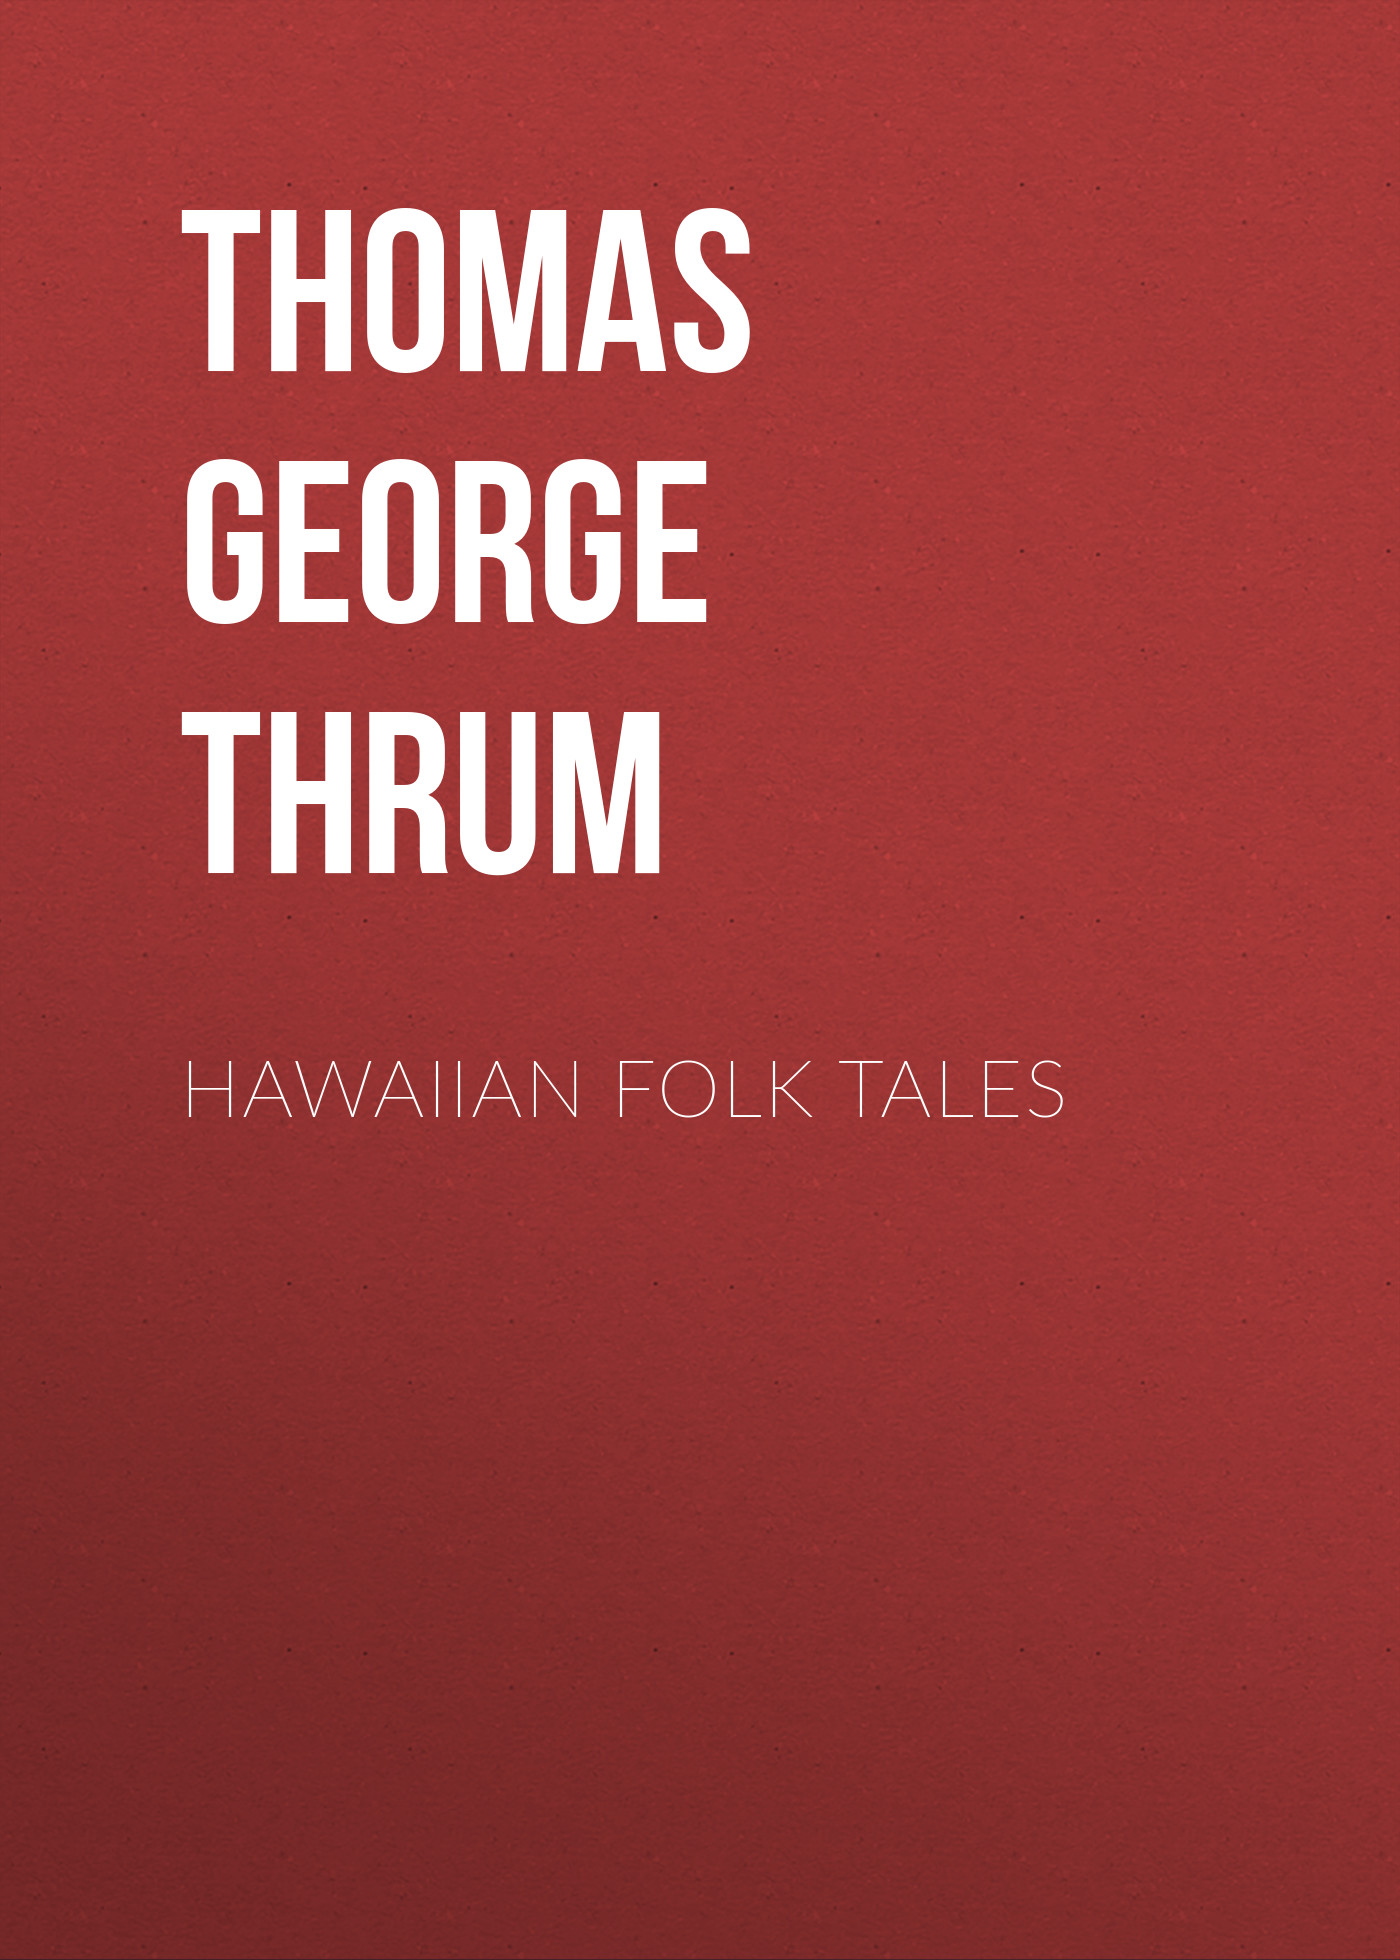 Thomas George Thrum Hawaiian Folk Tales kmise soprano ukulele mahogany ukelele uke 21 inch 4 string hawaiian guitar 12 fret with gig bag tuner